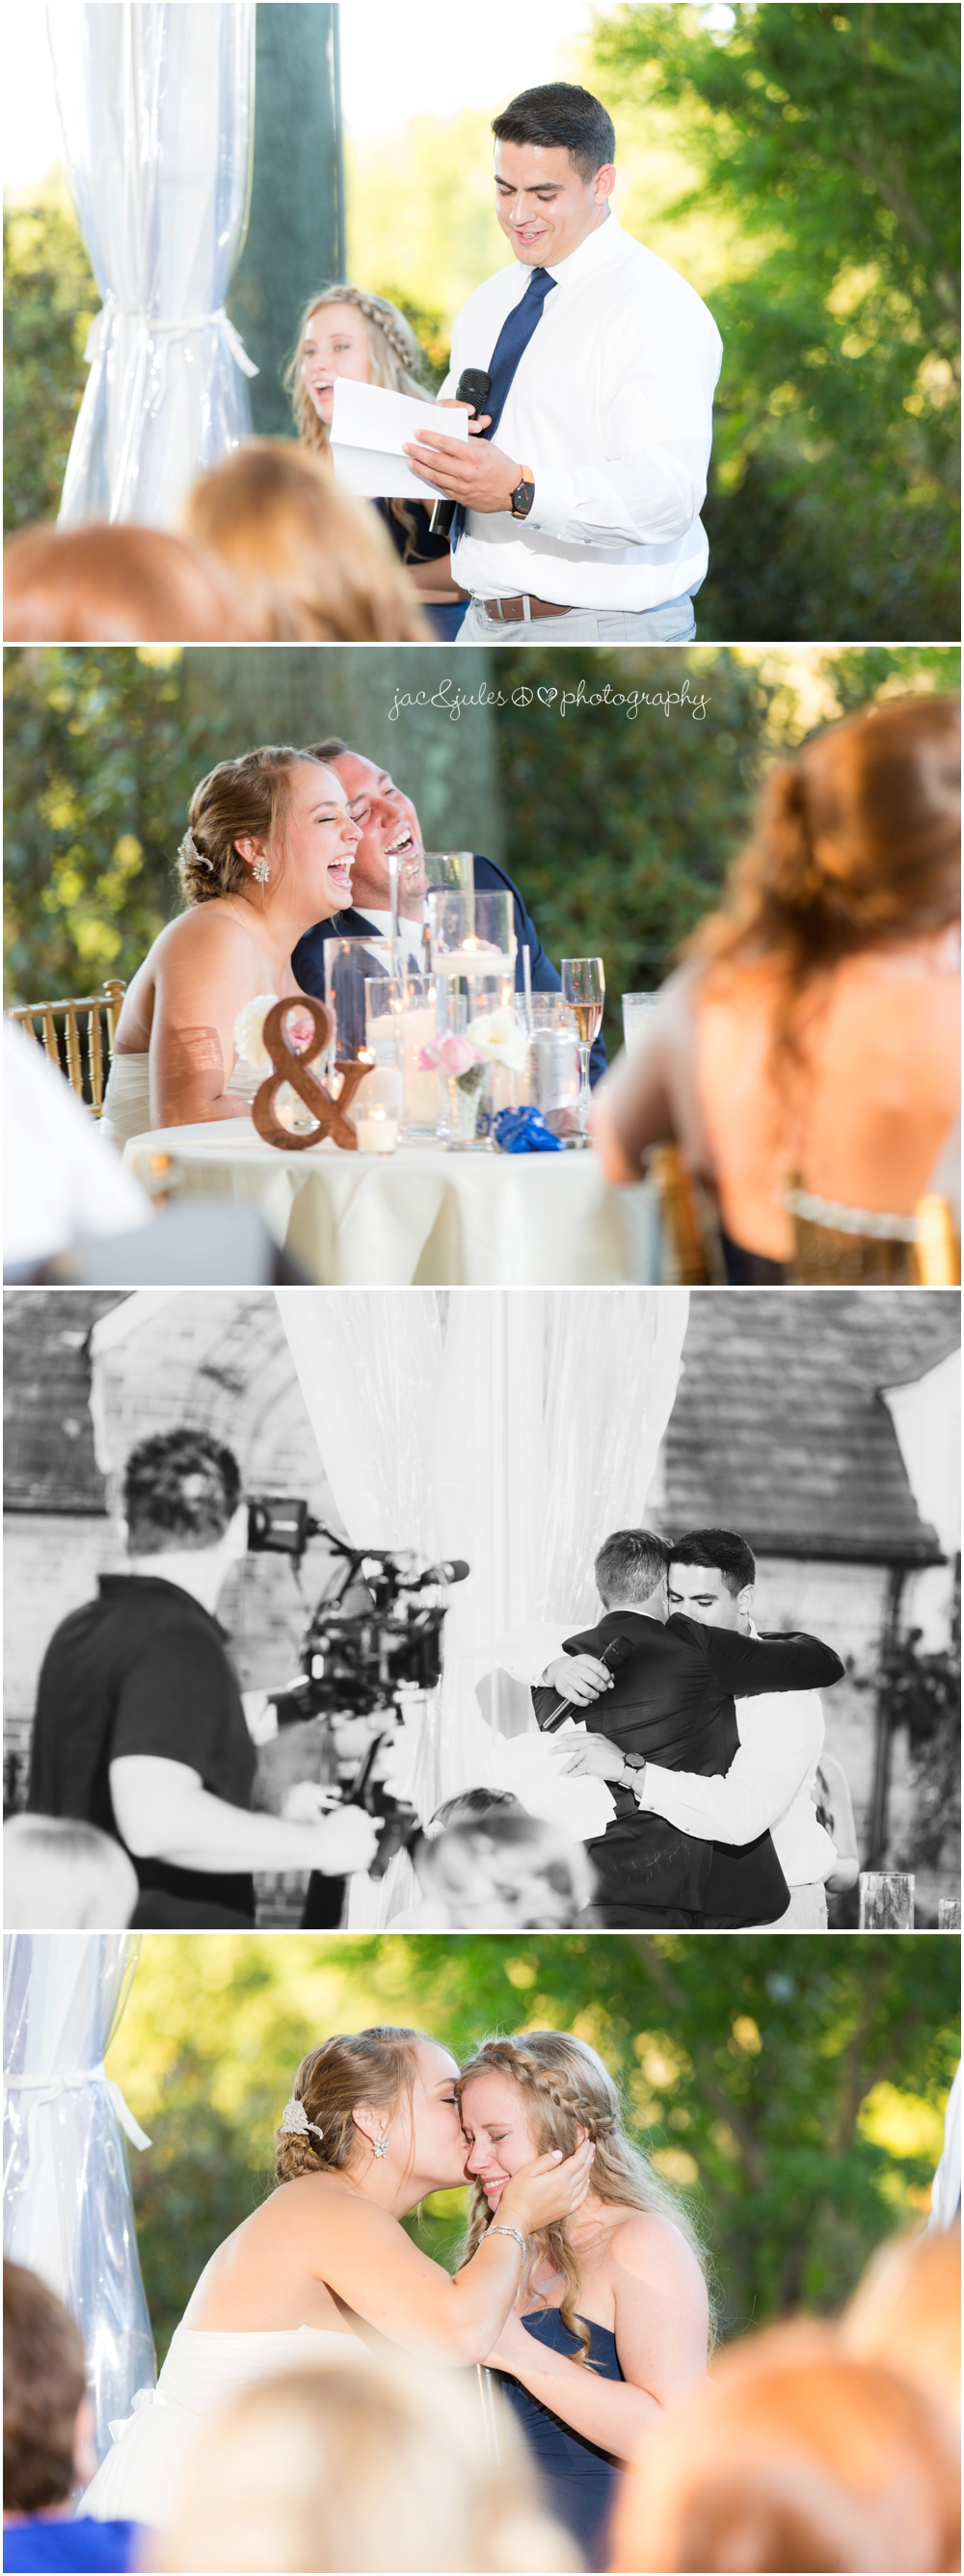 jacnjules photographs the toasts at a wedding at drumore estate in pa